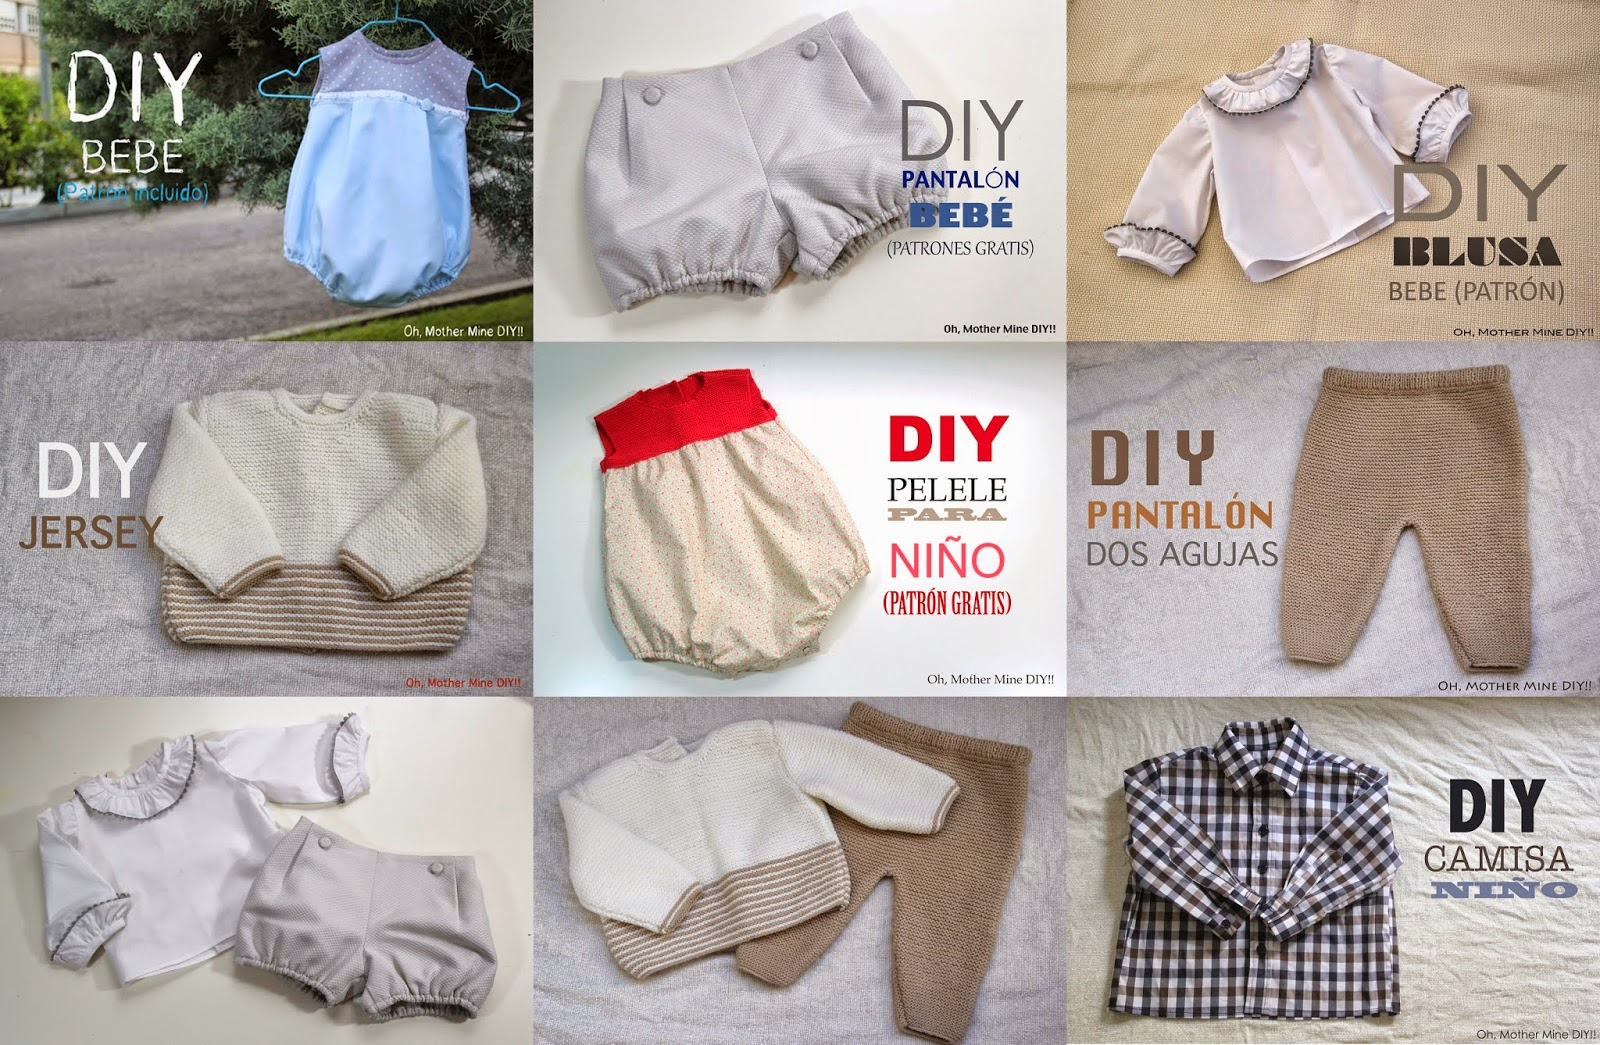 Blog costura y diy: Oh, Mother Mine DIY!!: Patrones y tutoriales ...